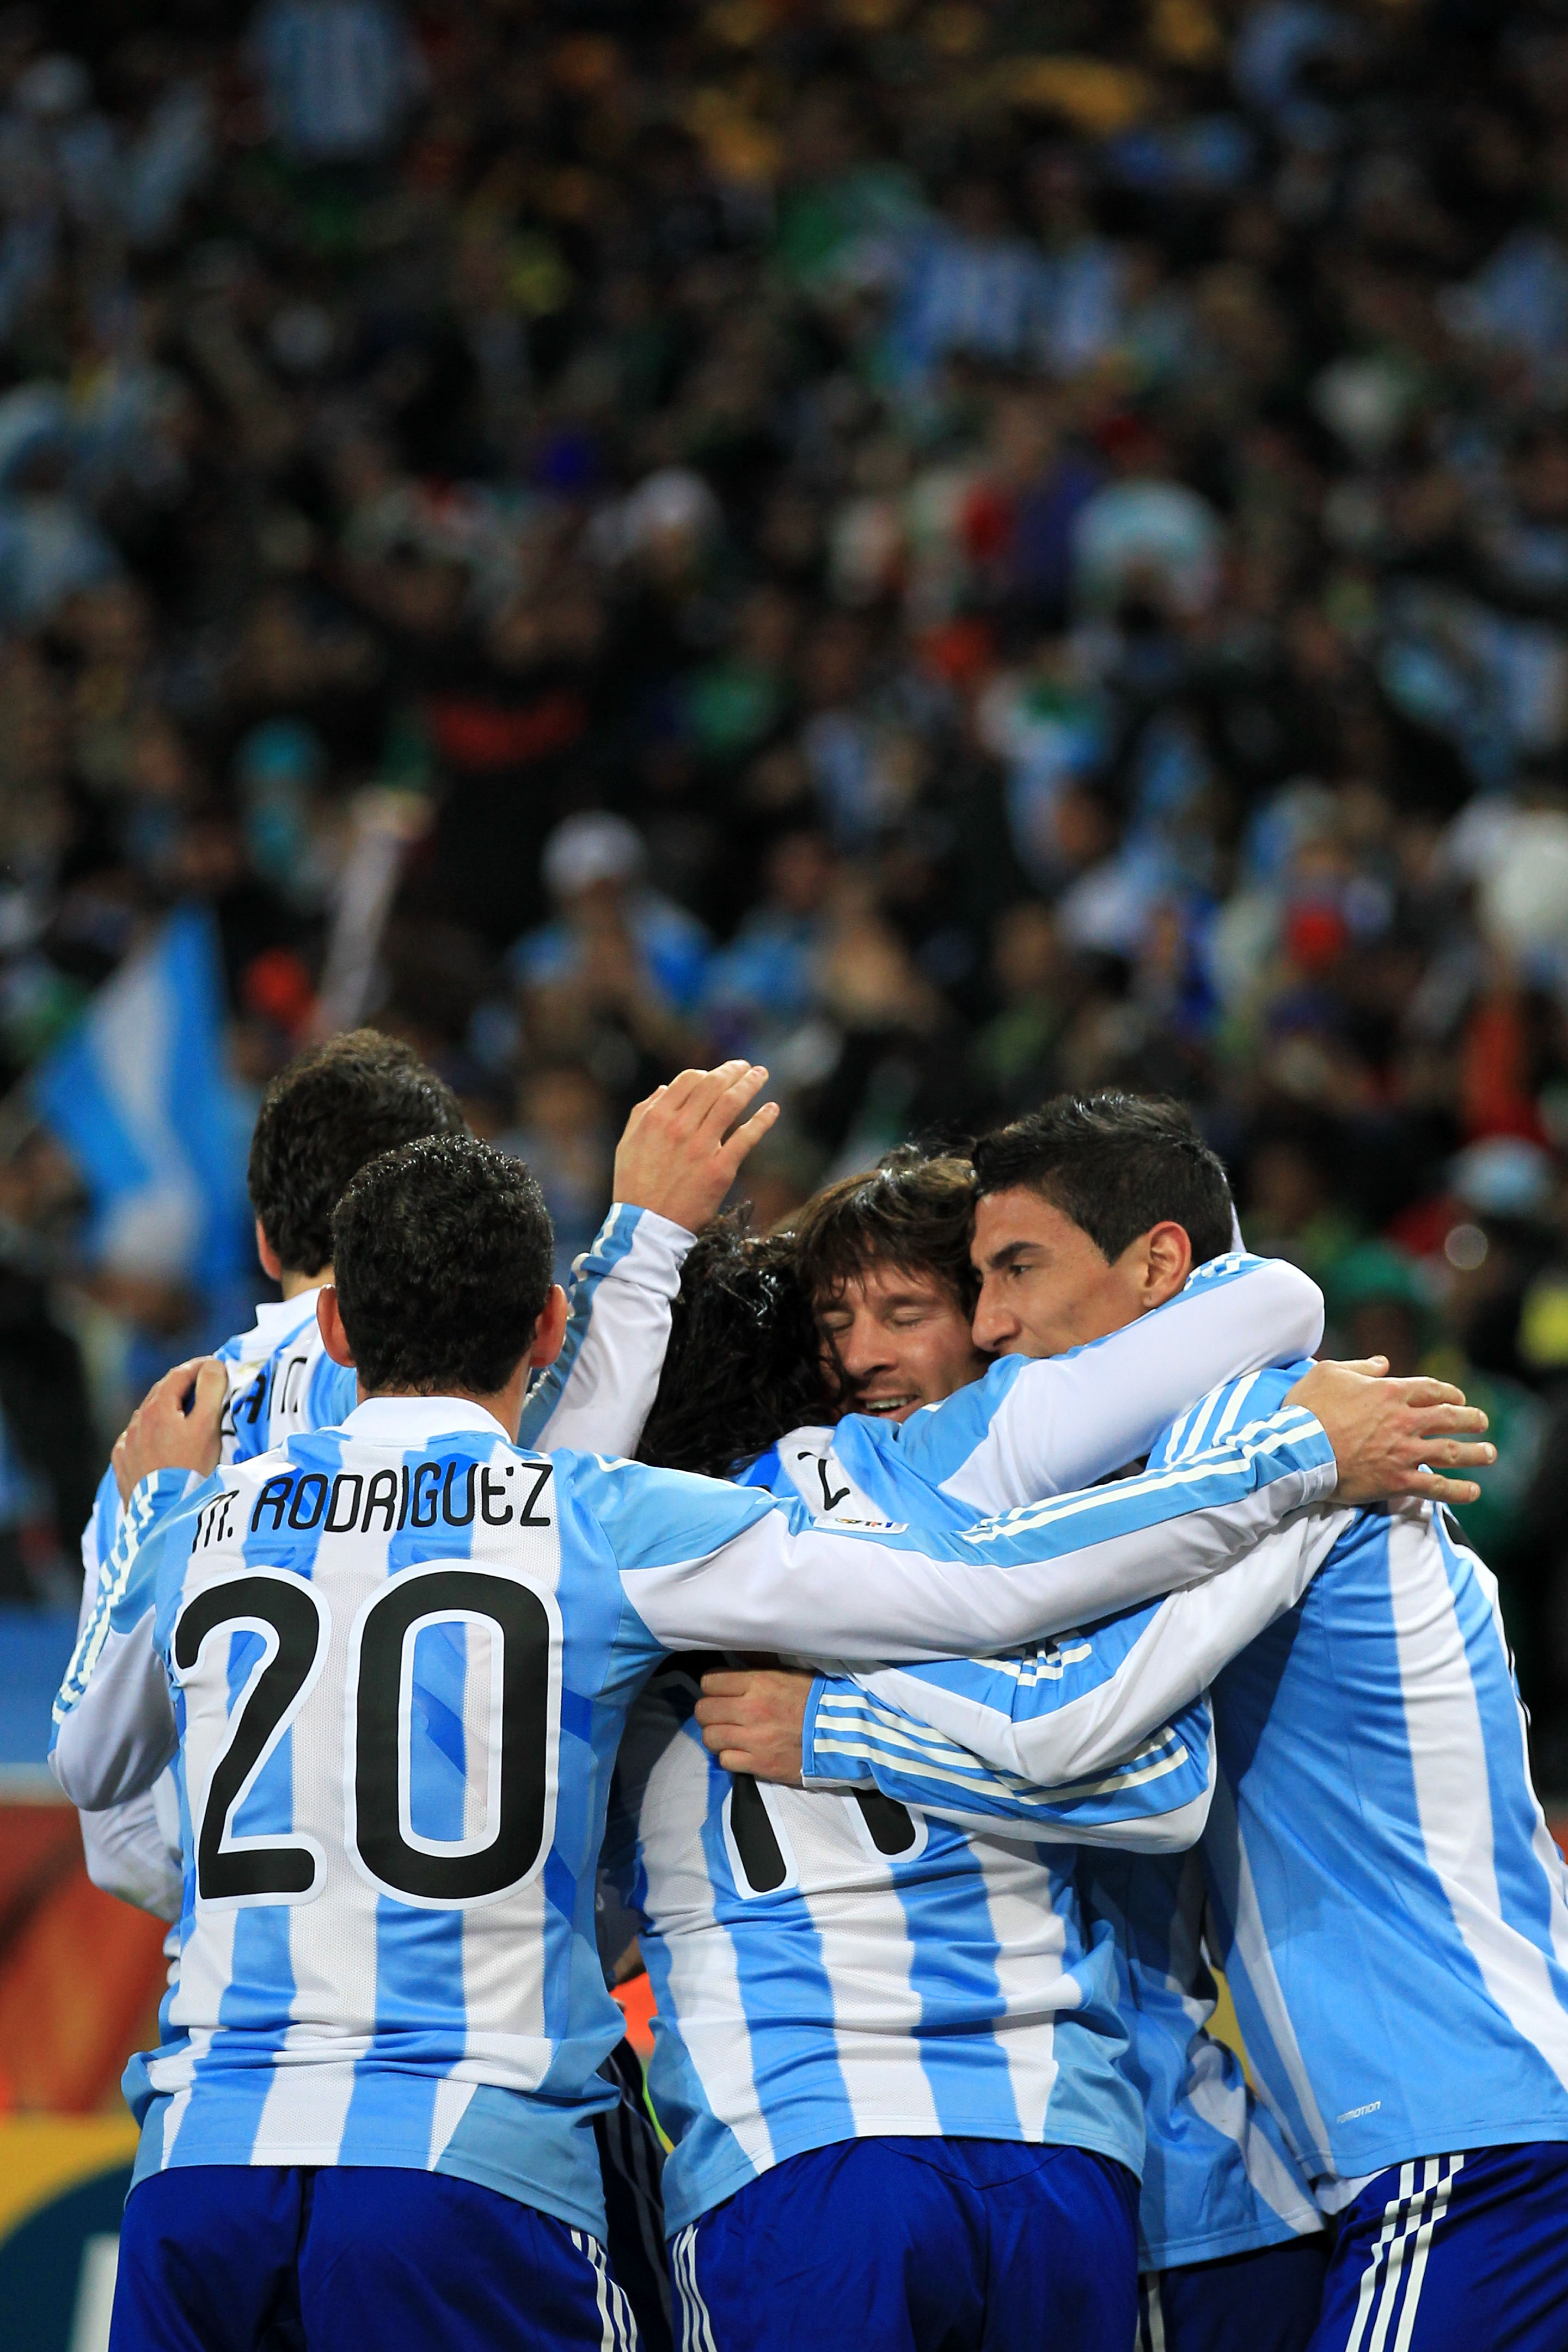 JOHANNESBURG, SOUTH AFRICA - JUNE 27:  Lionel Messi of Argentina (C) hugs goalscorer Carlos Tevez as they celebrate the opening goal during the 2010 FIFA World Cup South Africa Round of Sixteen match between Argentina and Mexico at Soccer City Stadium on